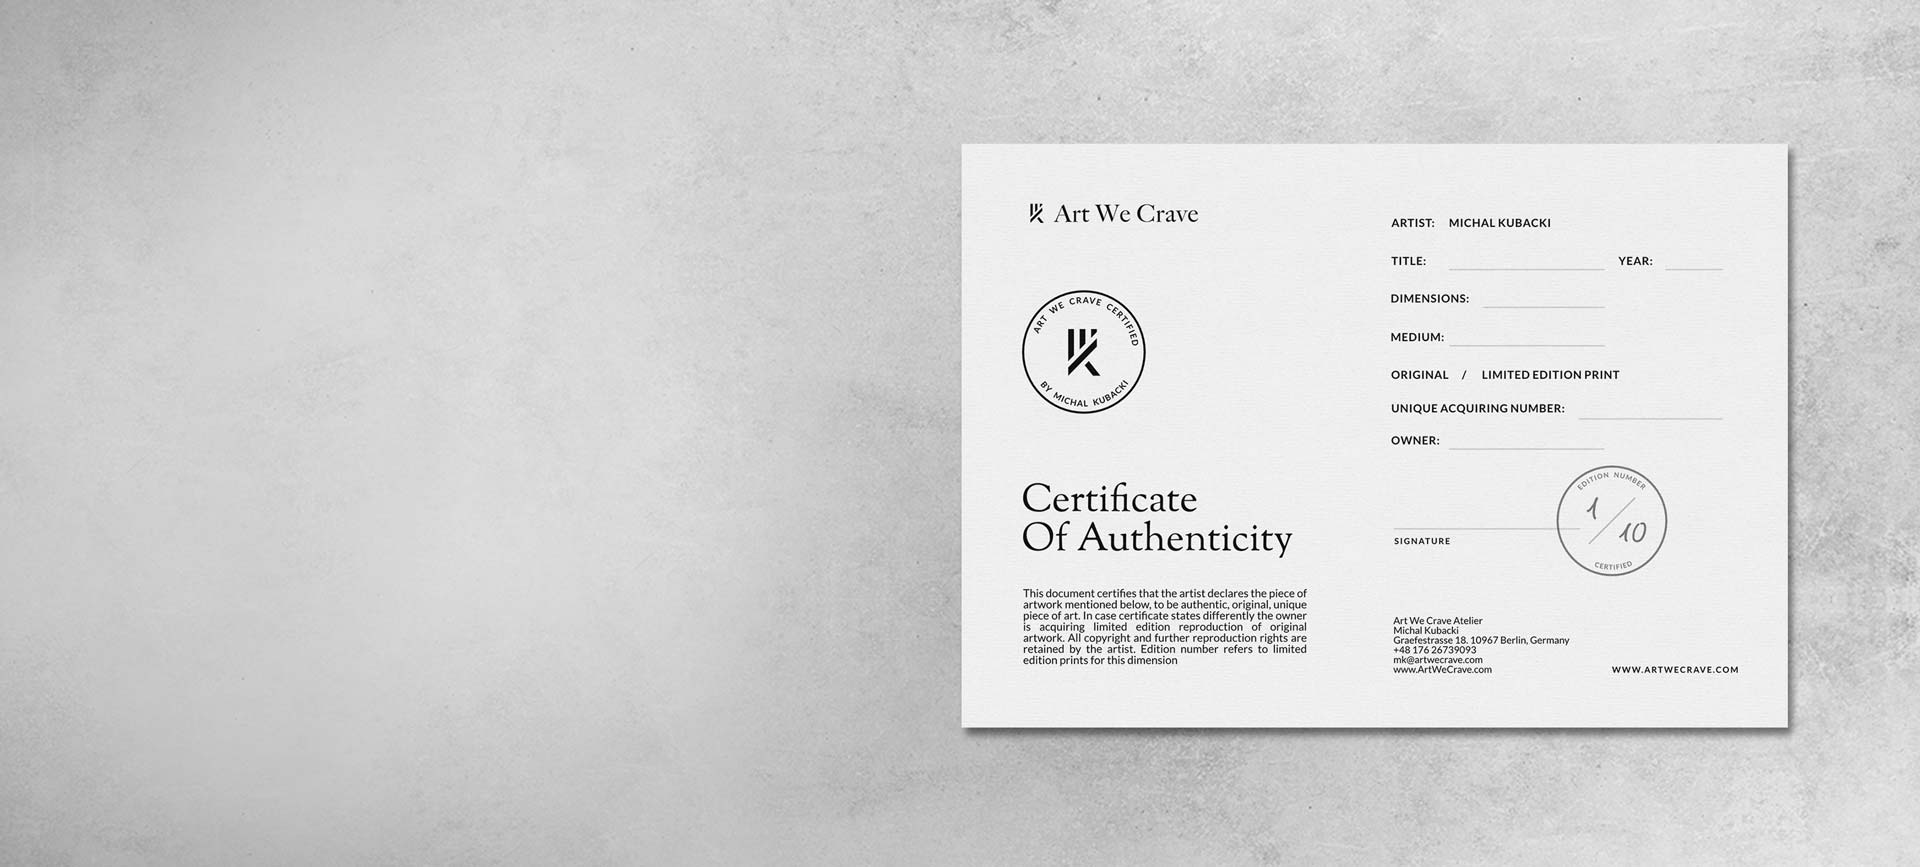 Art_We_Crave_quality_certificate_of_authenticity